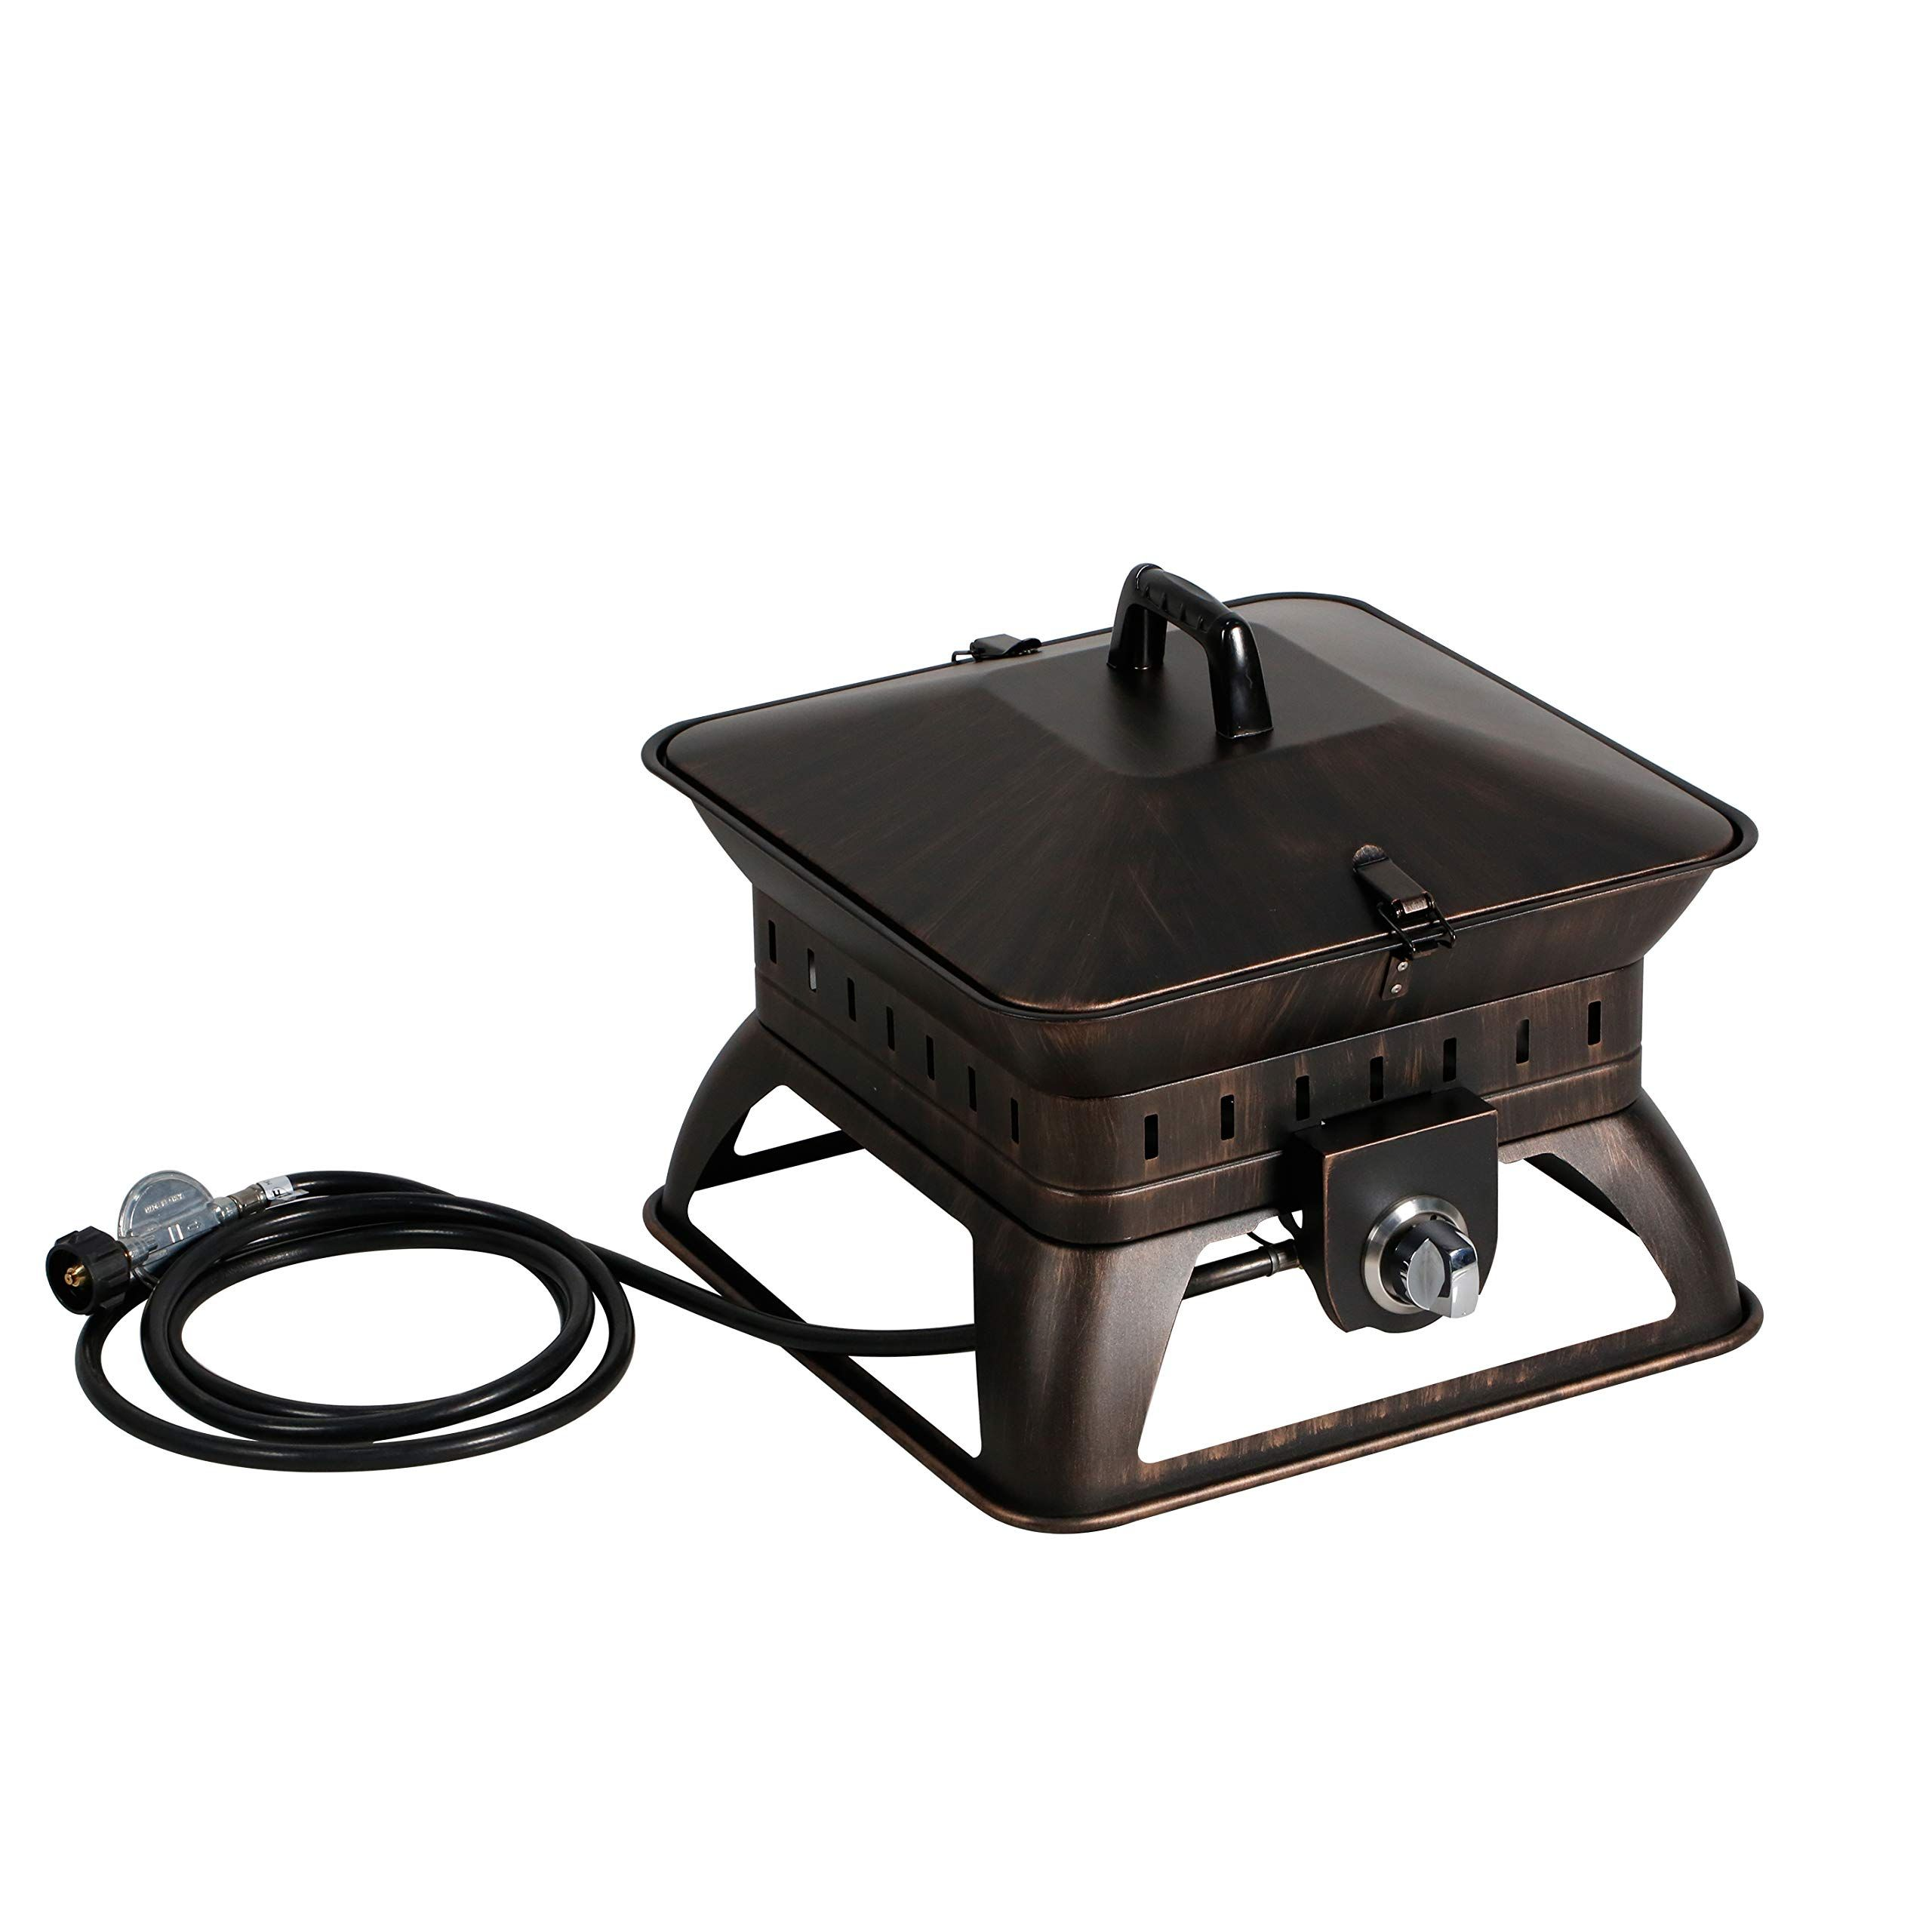 Bali Outdoors Firepit Tailgate Gas Portable Fire Pit Black